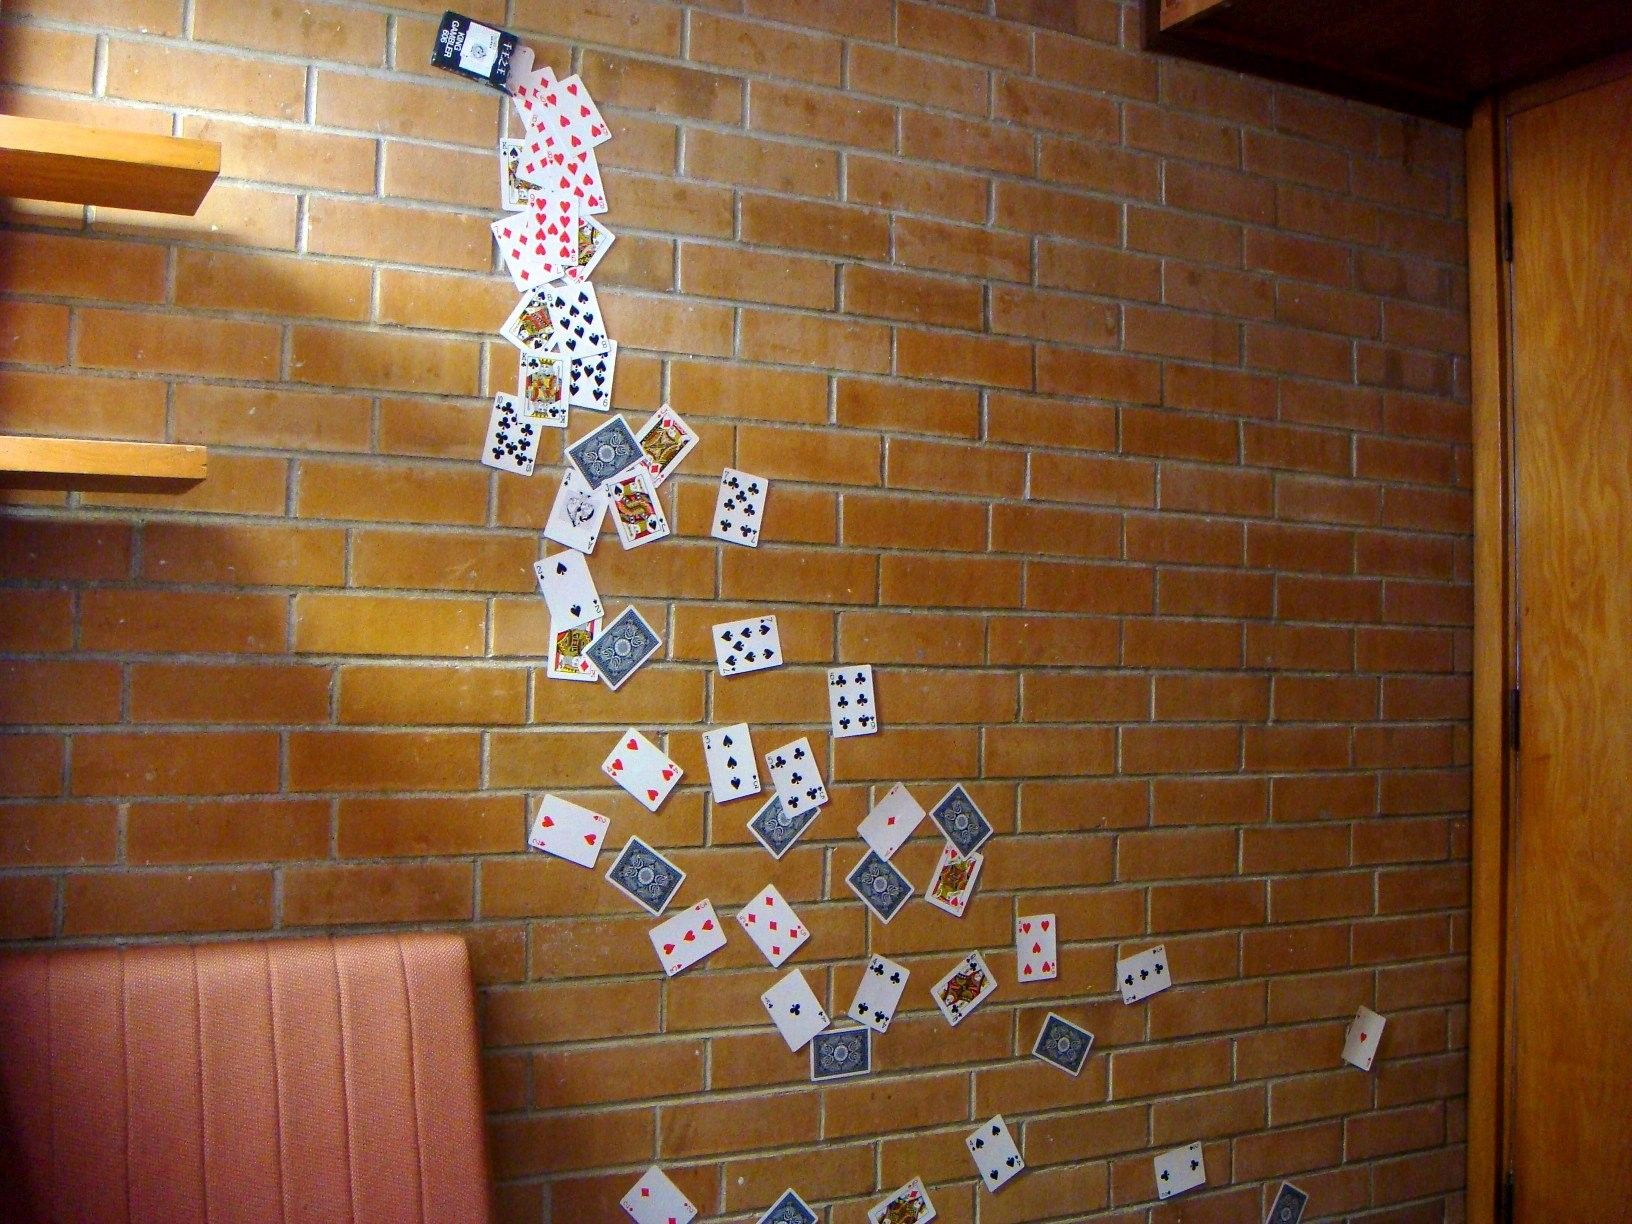 91 best dorm ideas images on pinterest homes diy and cool stuff i made this on my dorm wall while procrastinating amipublicfo Choice Image